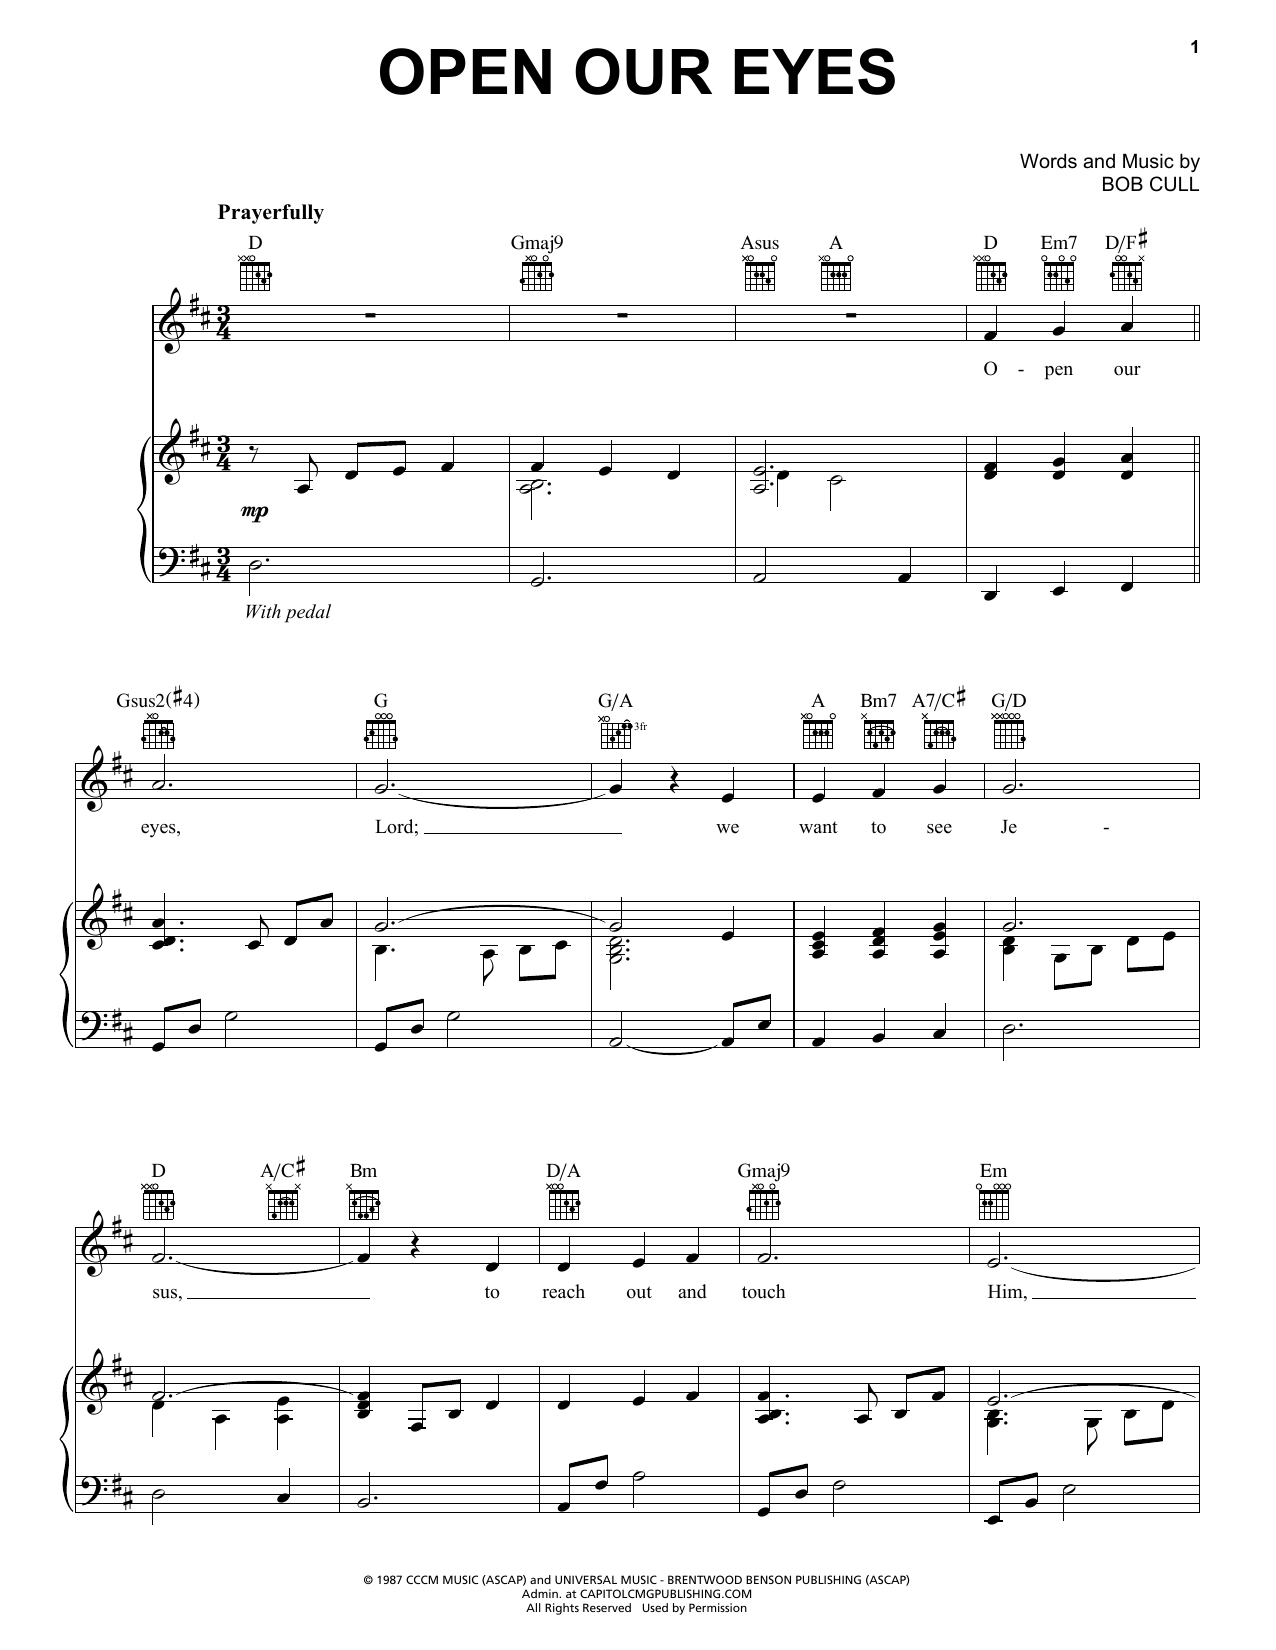 Bob Cull Open Our Eyes sheet music notes and chords